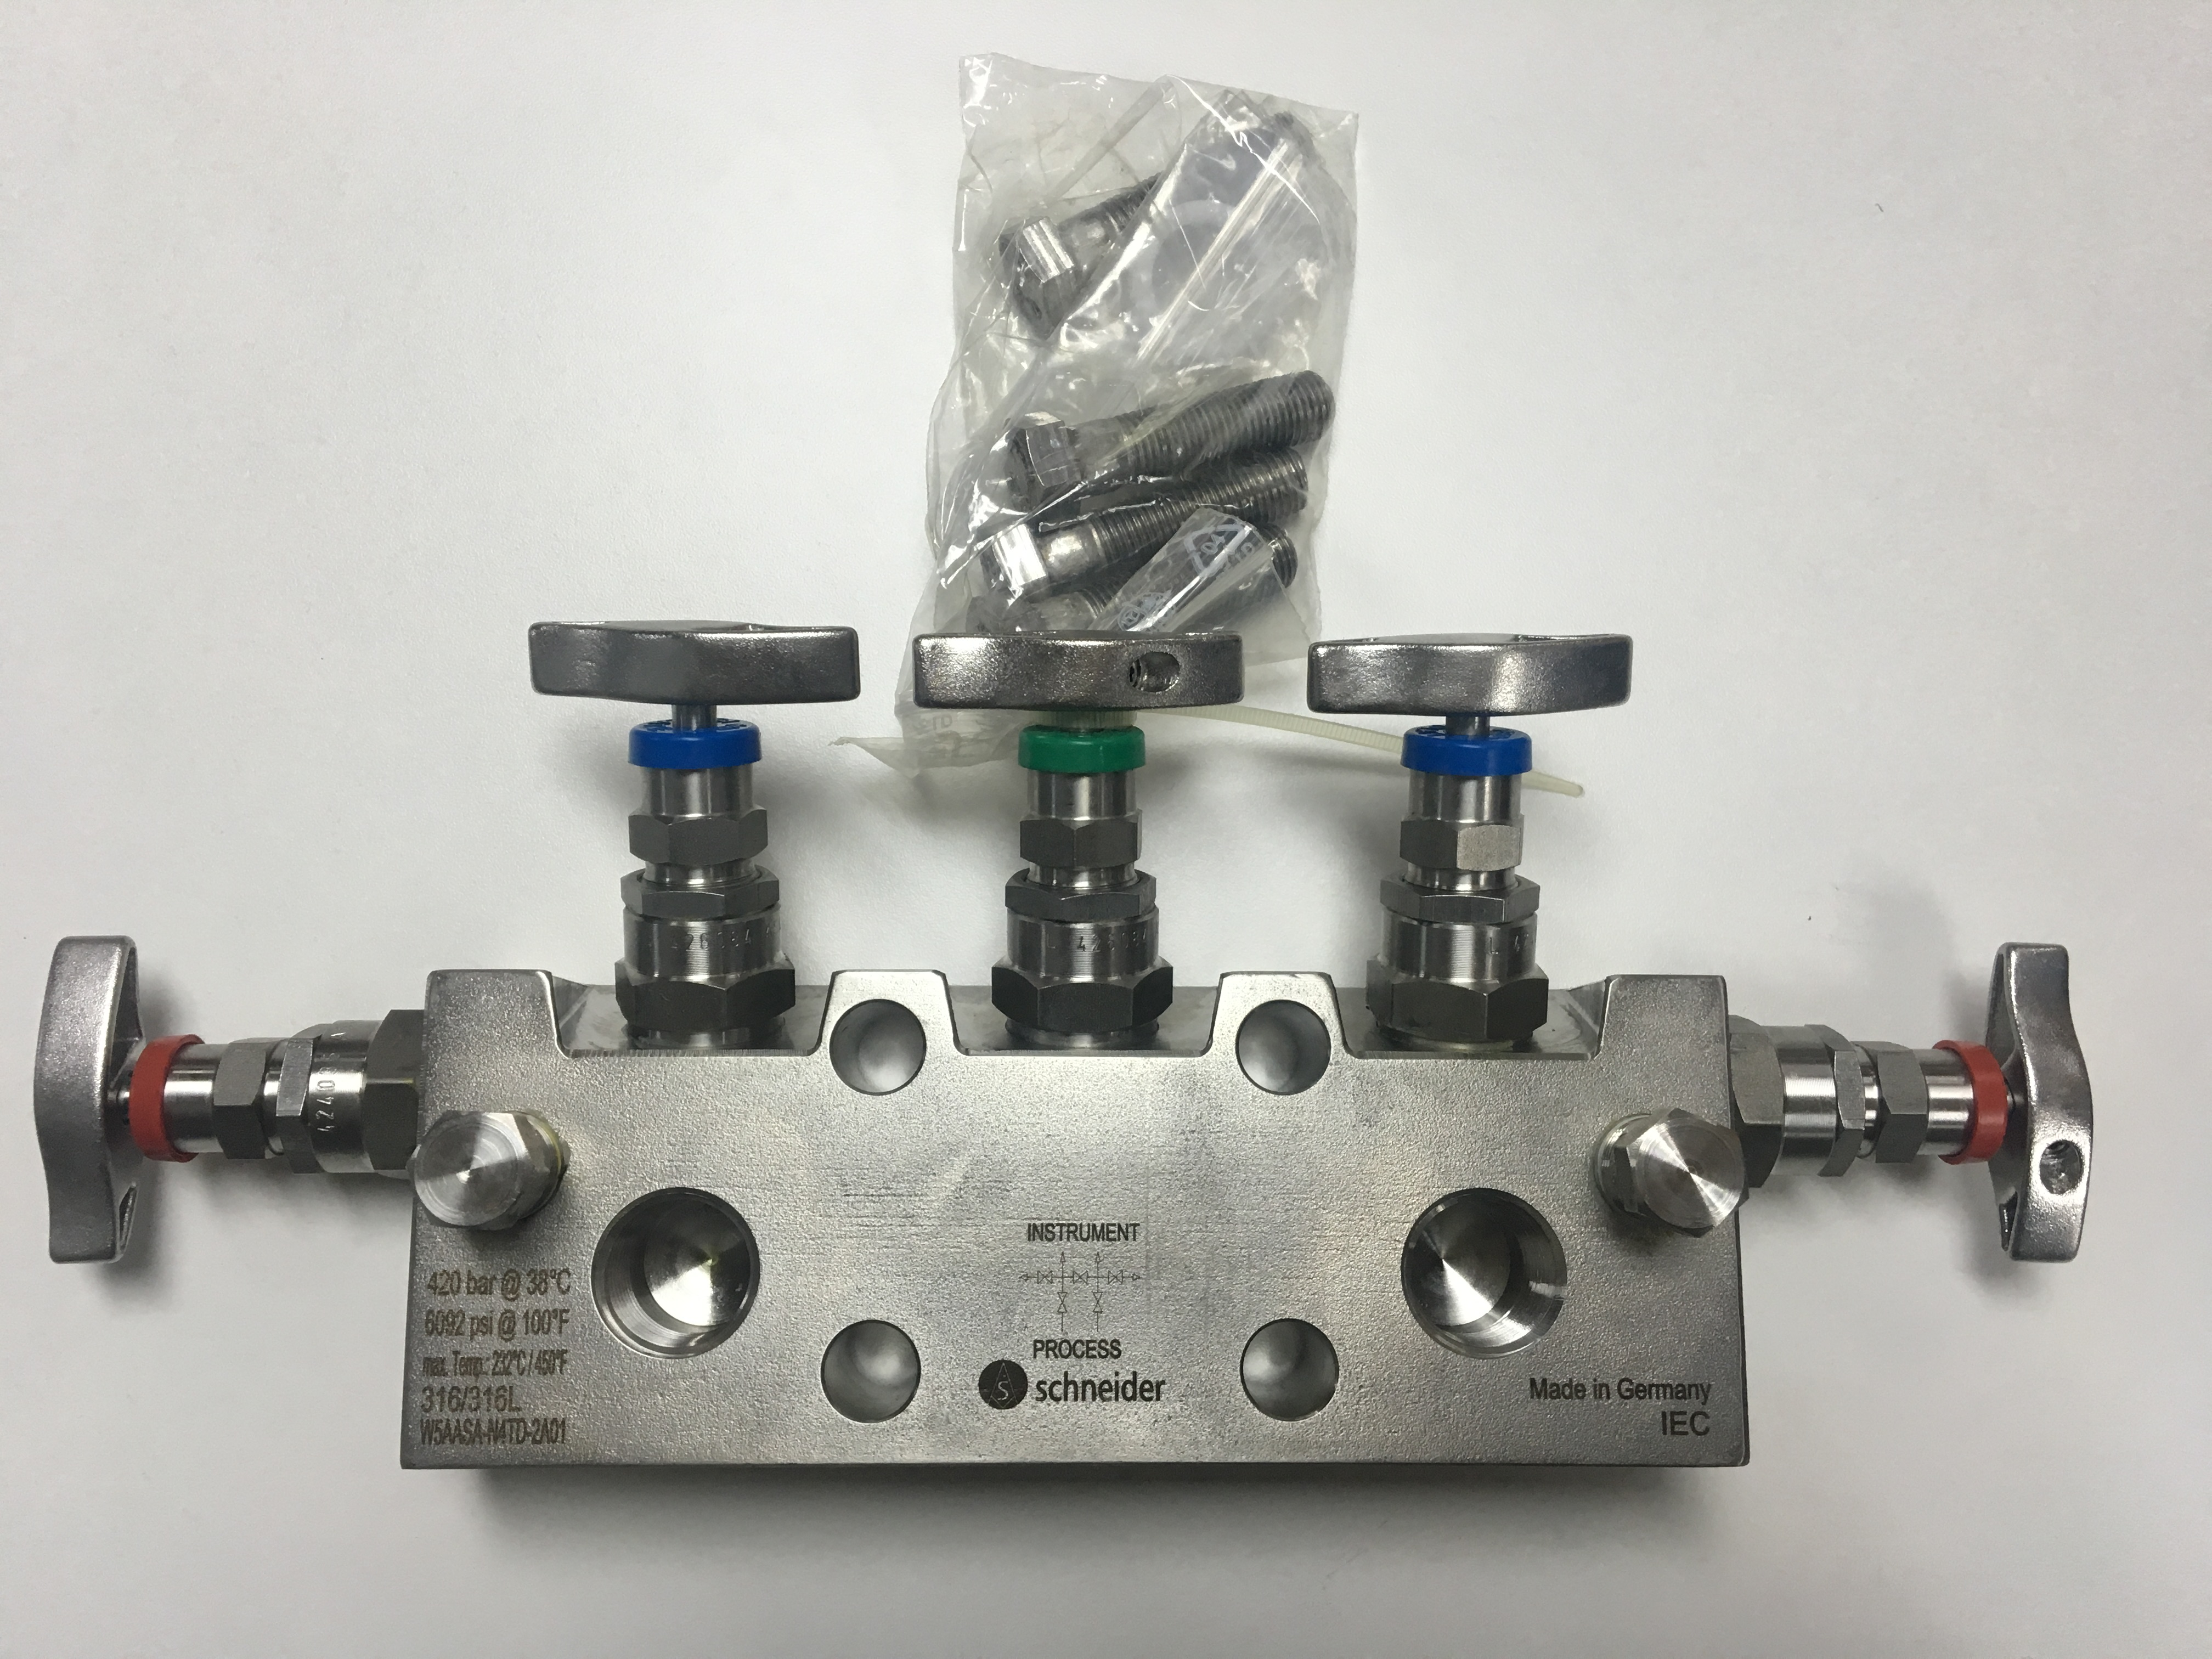 5 VALVE MANIFOLD PN420 FOR DIRECT MOUNTING